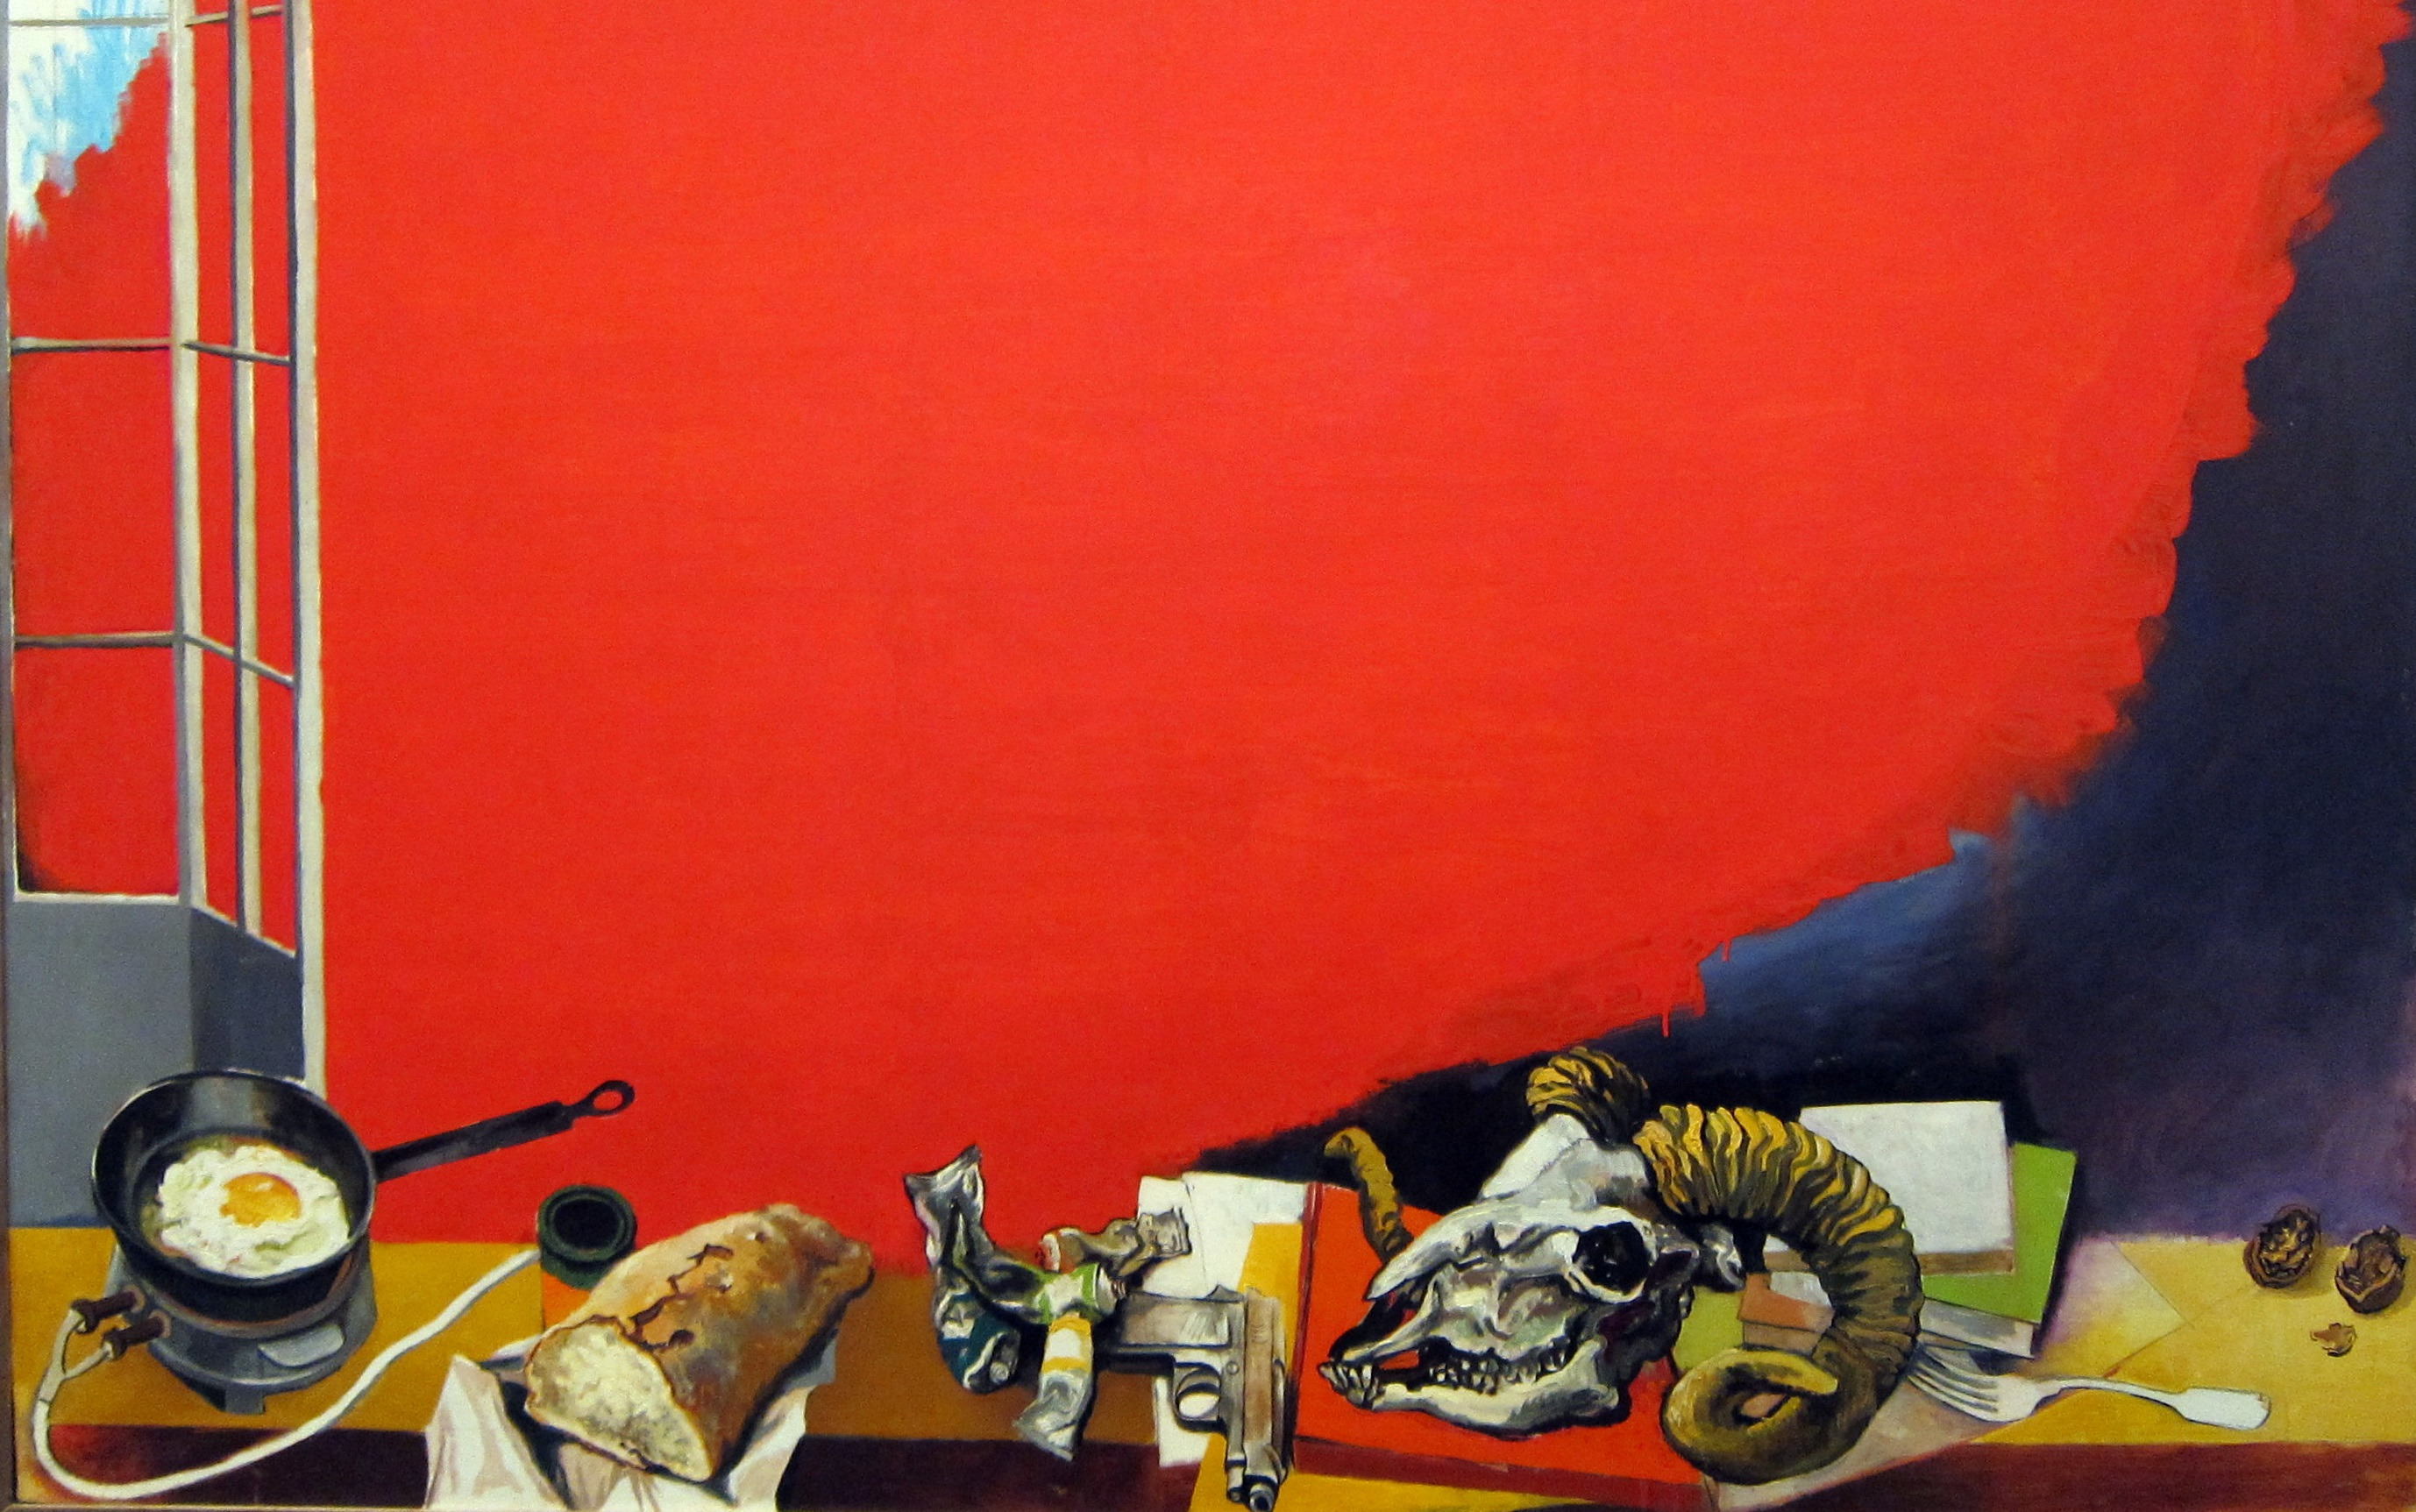 Renato Guttuso, 'The Red Cloud', 1966. Image: Chris Ilsley